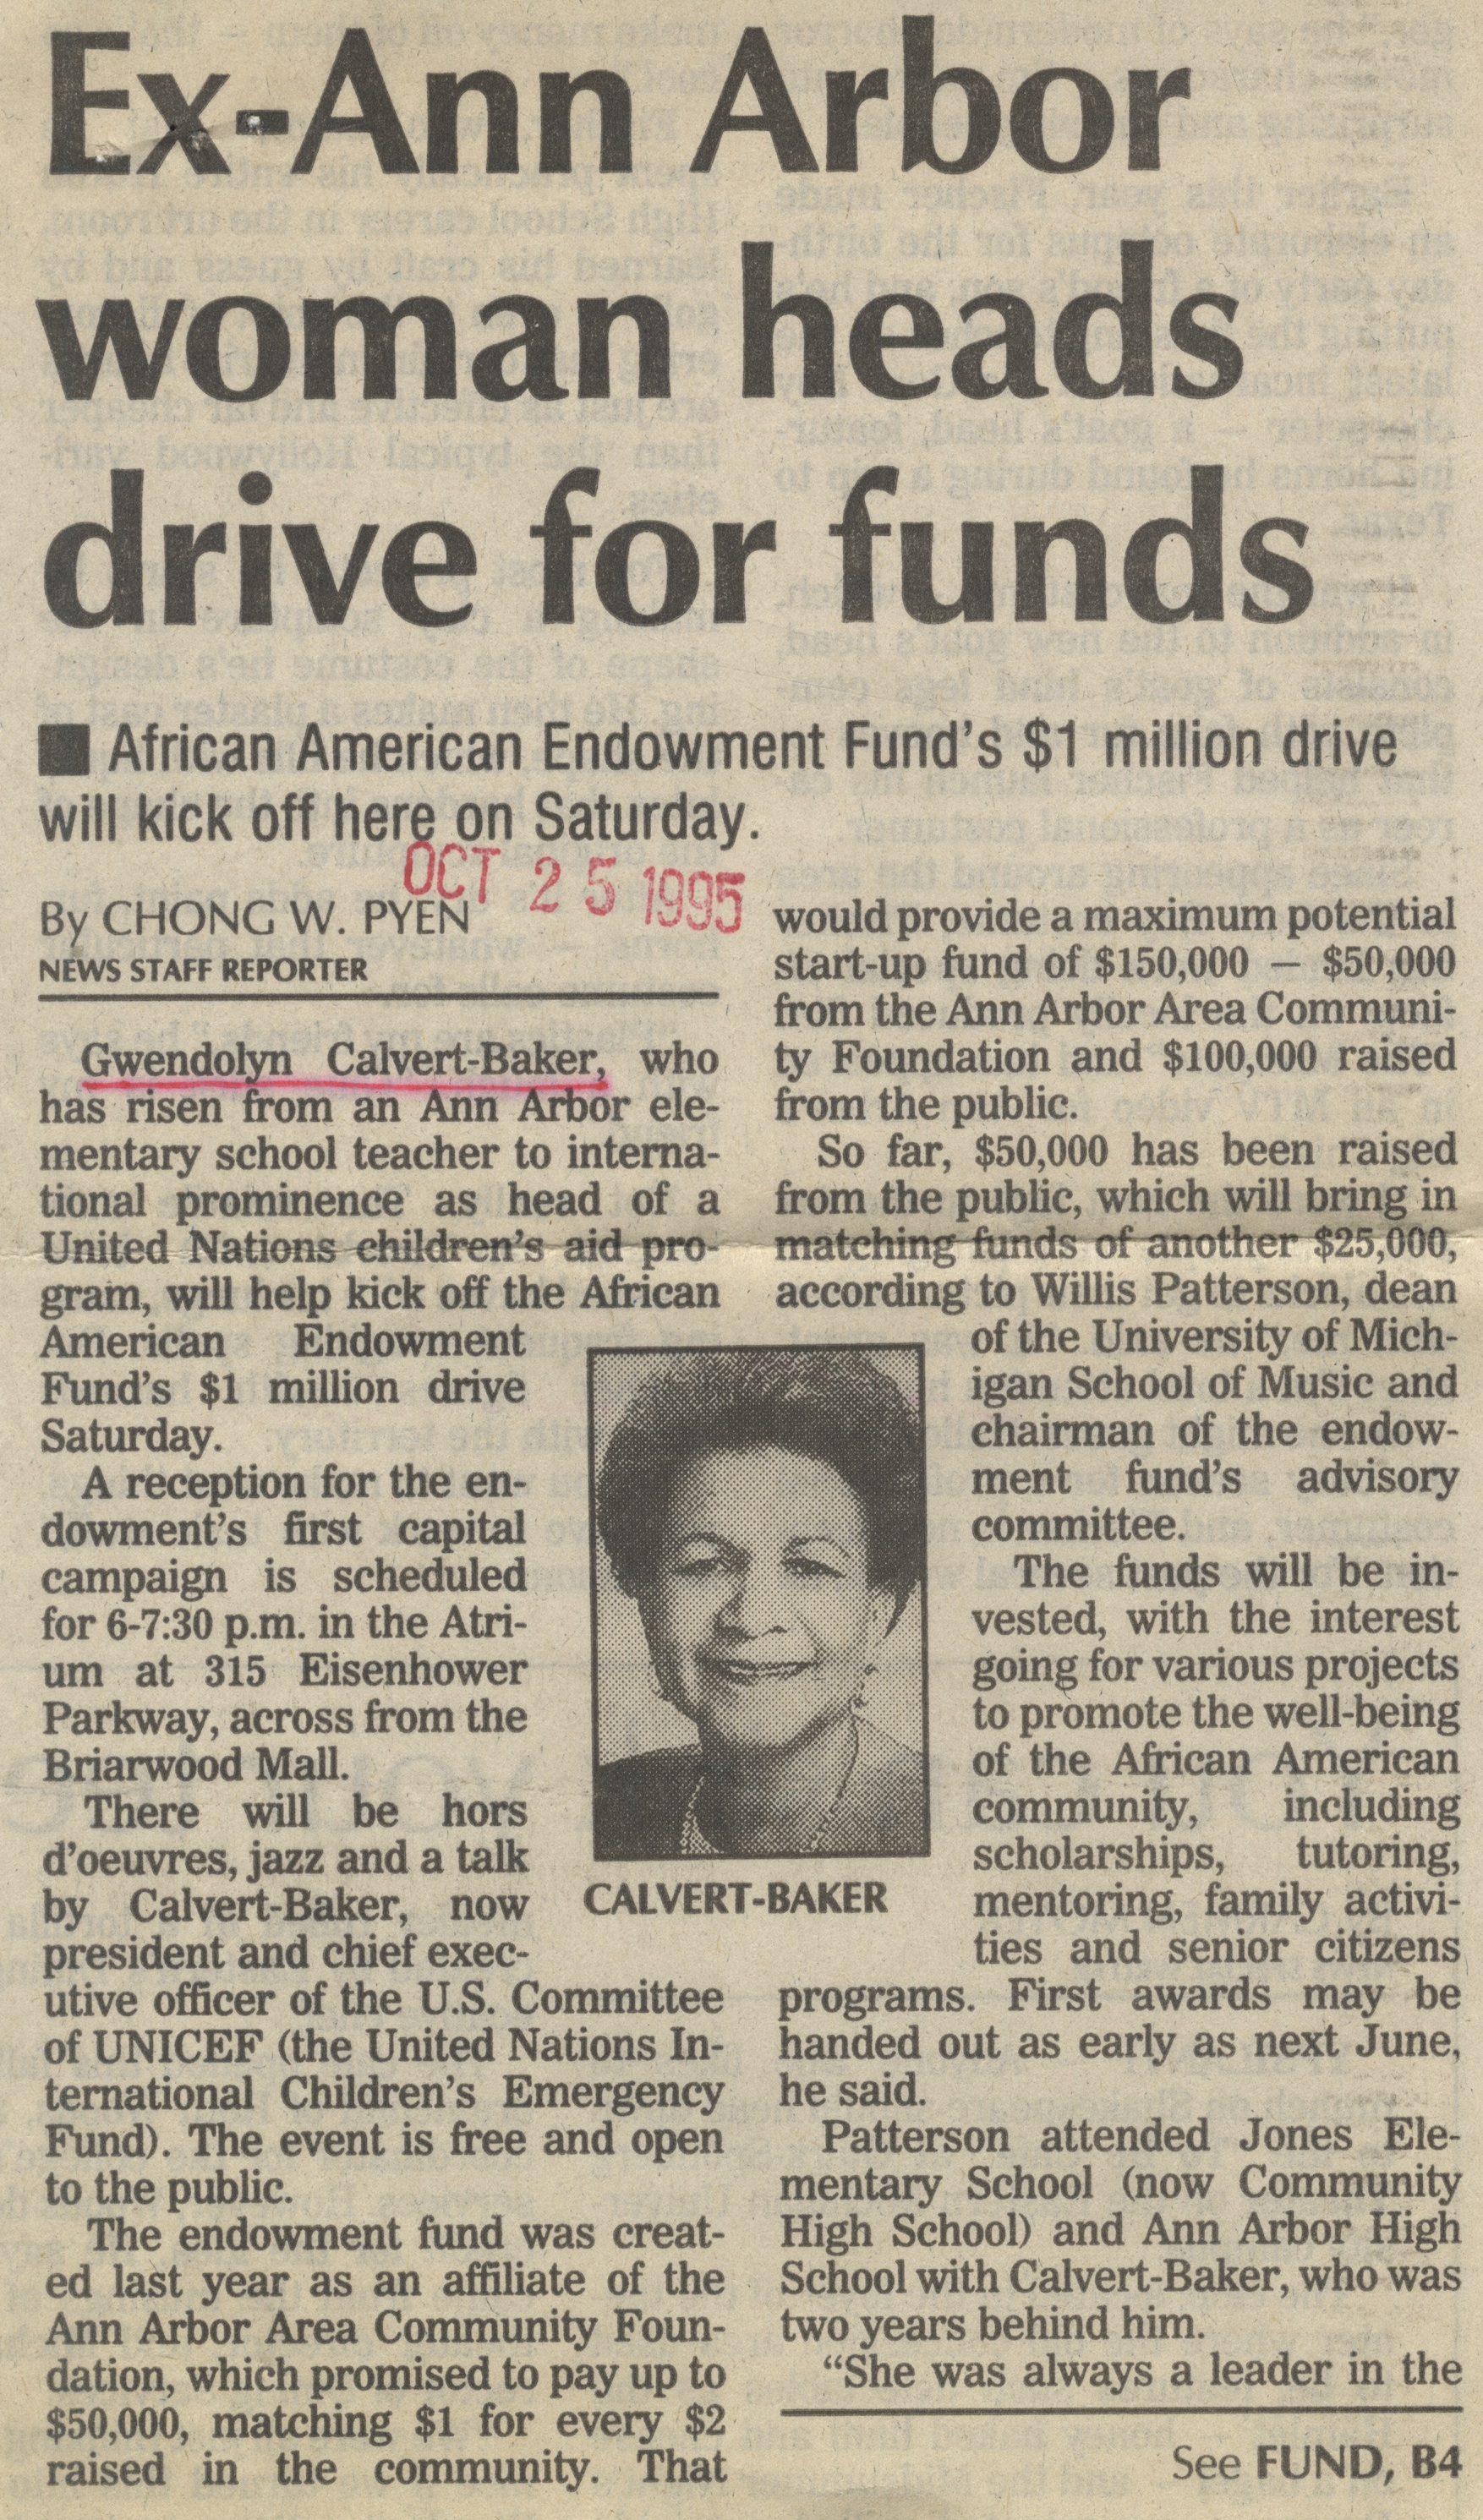 Ex-Ann Arbor Woman Heads Drive For Funds image